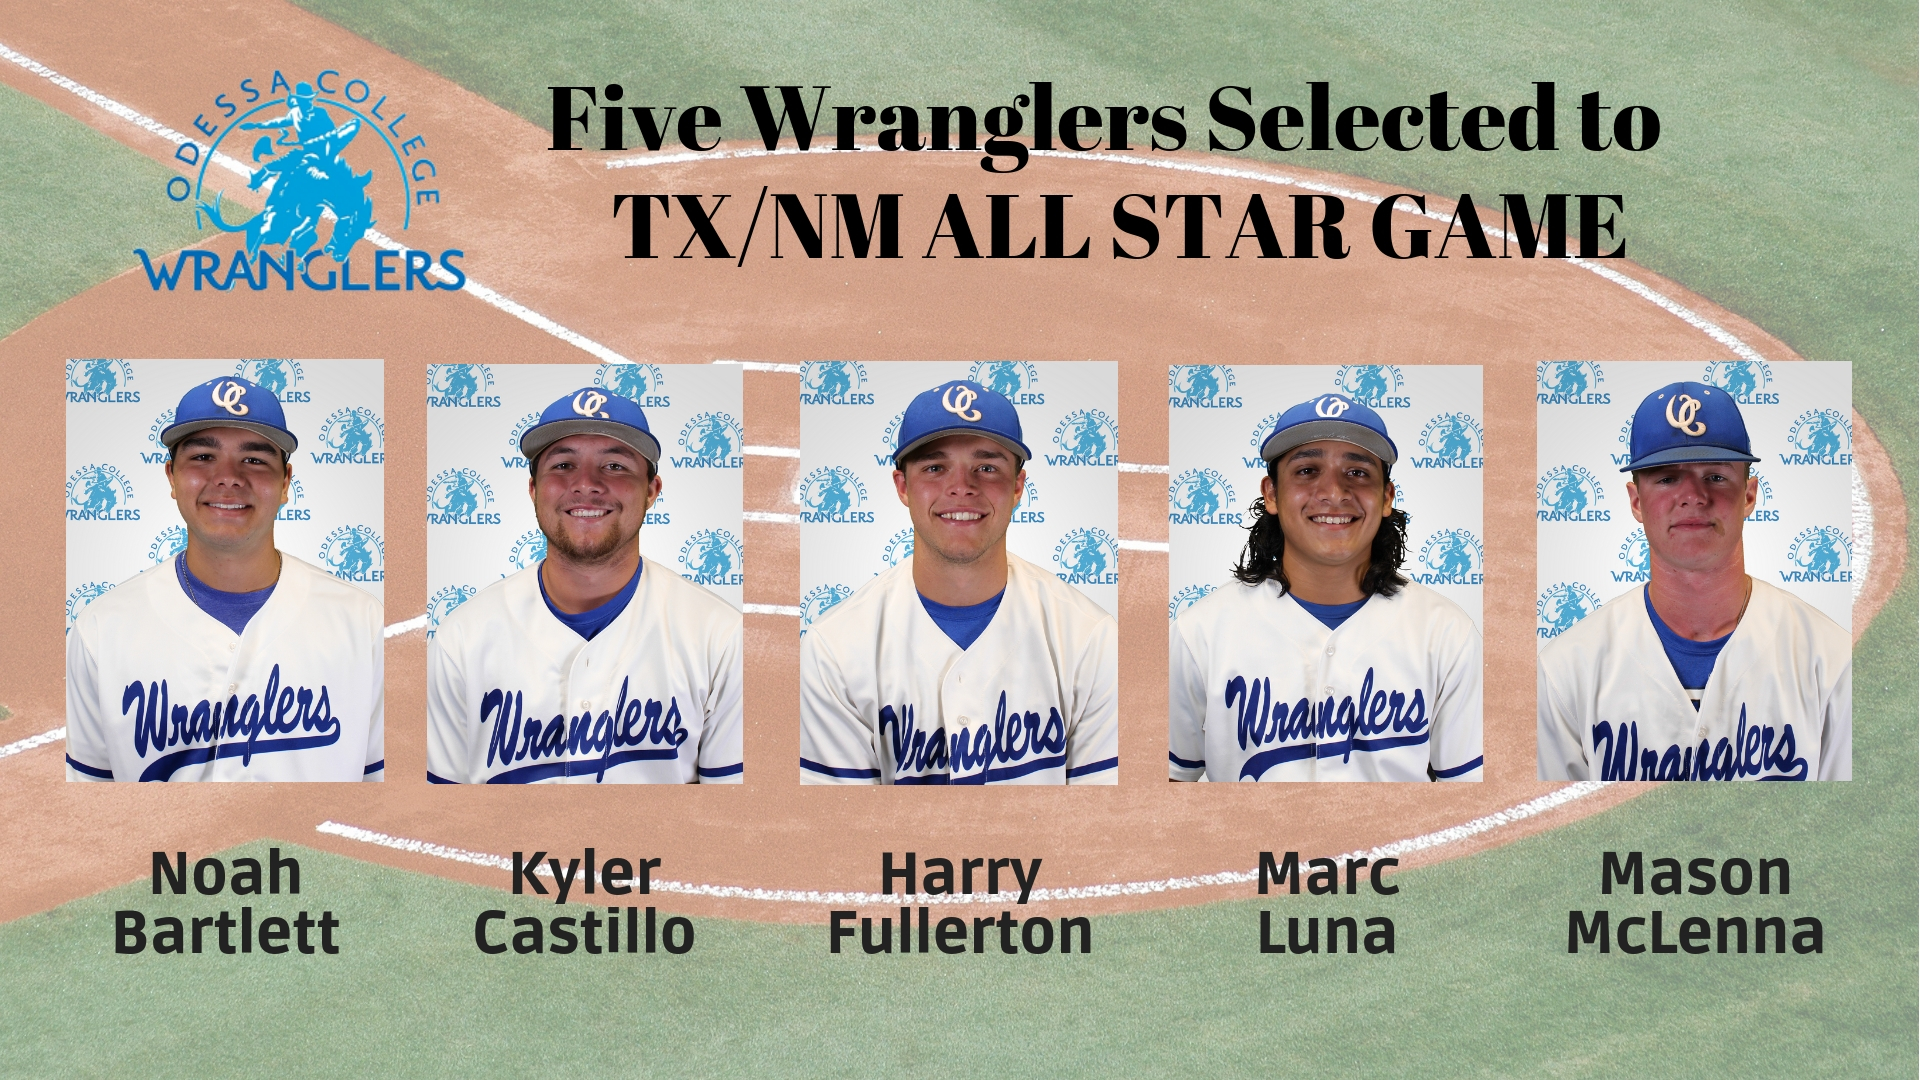 Five Wranglers Selected to TX/NM All-Star Game